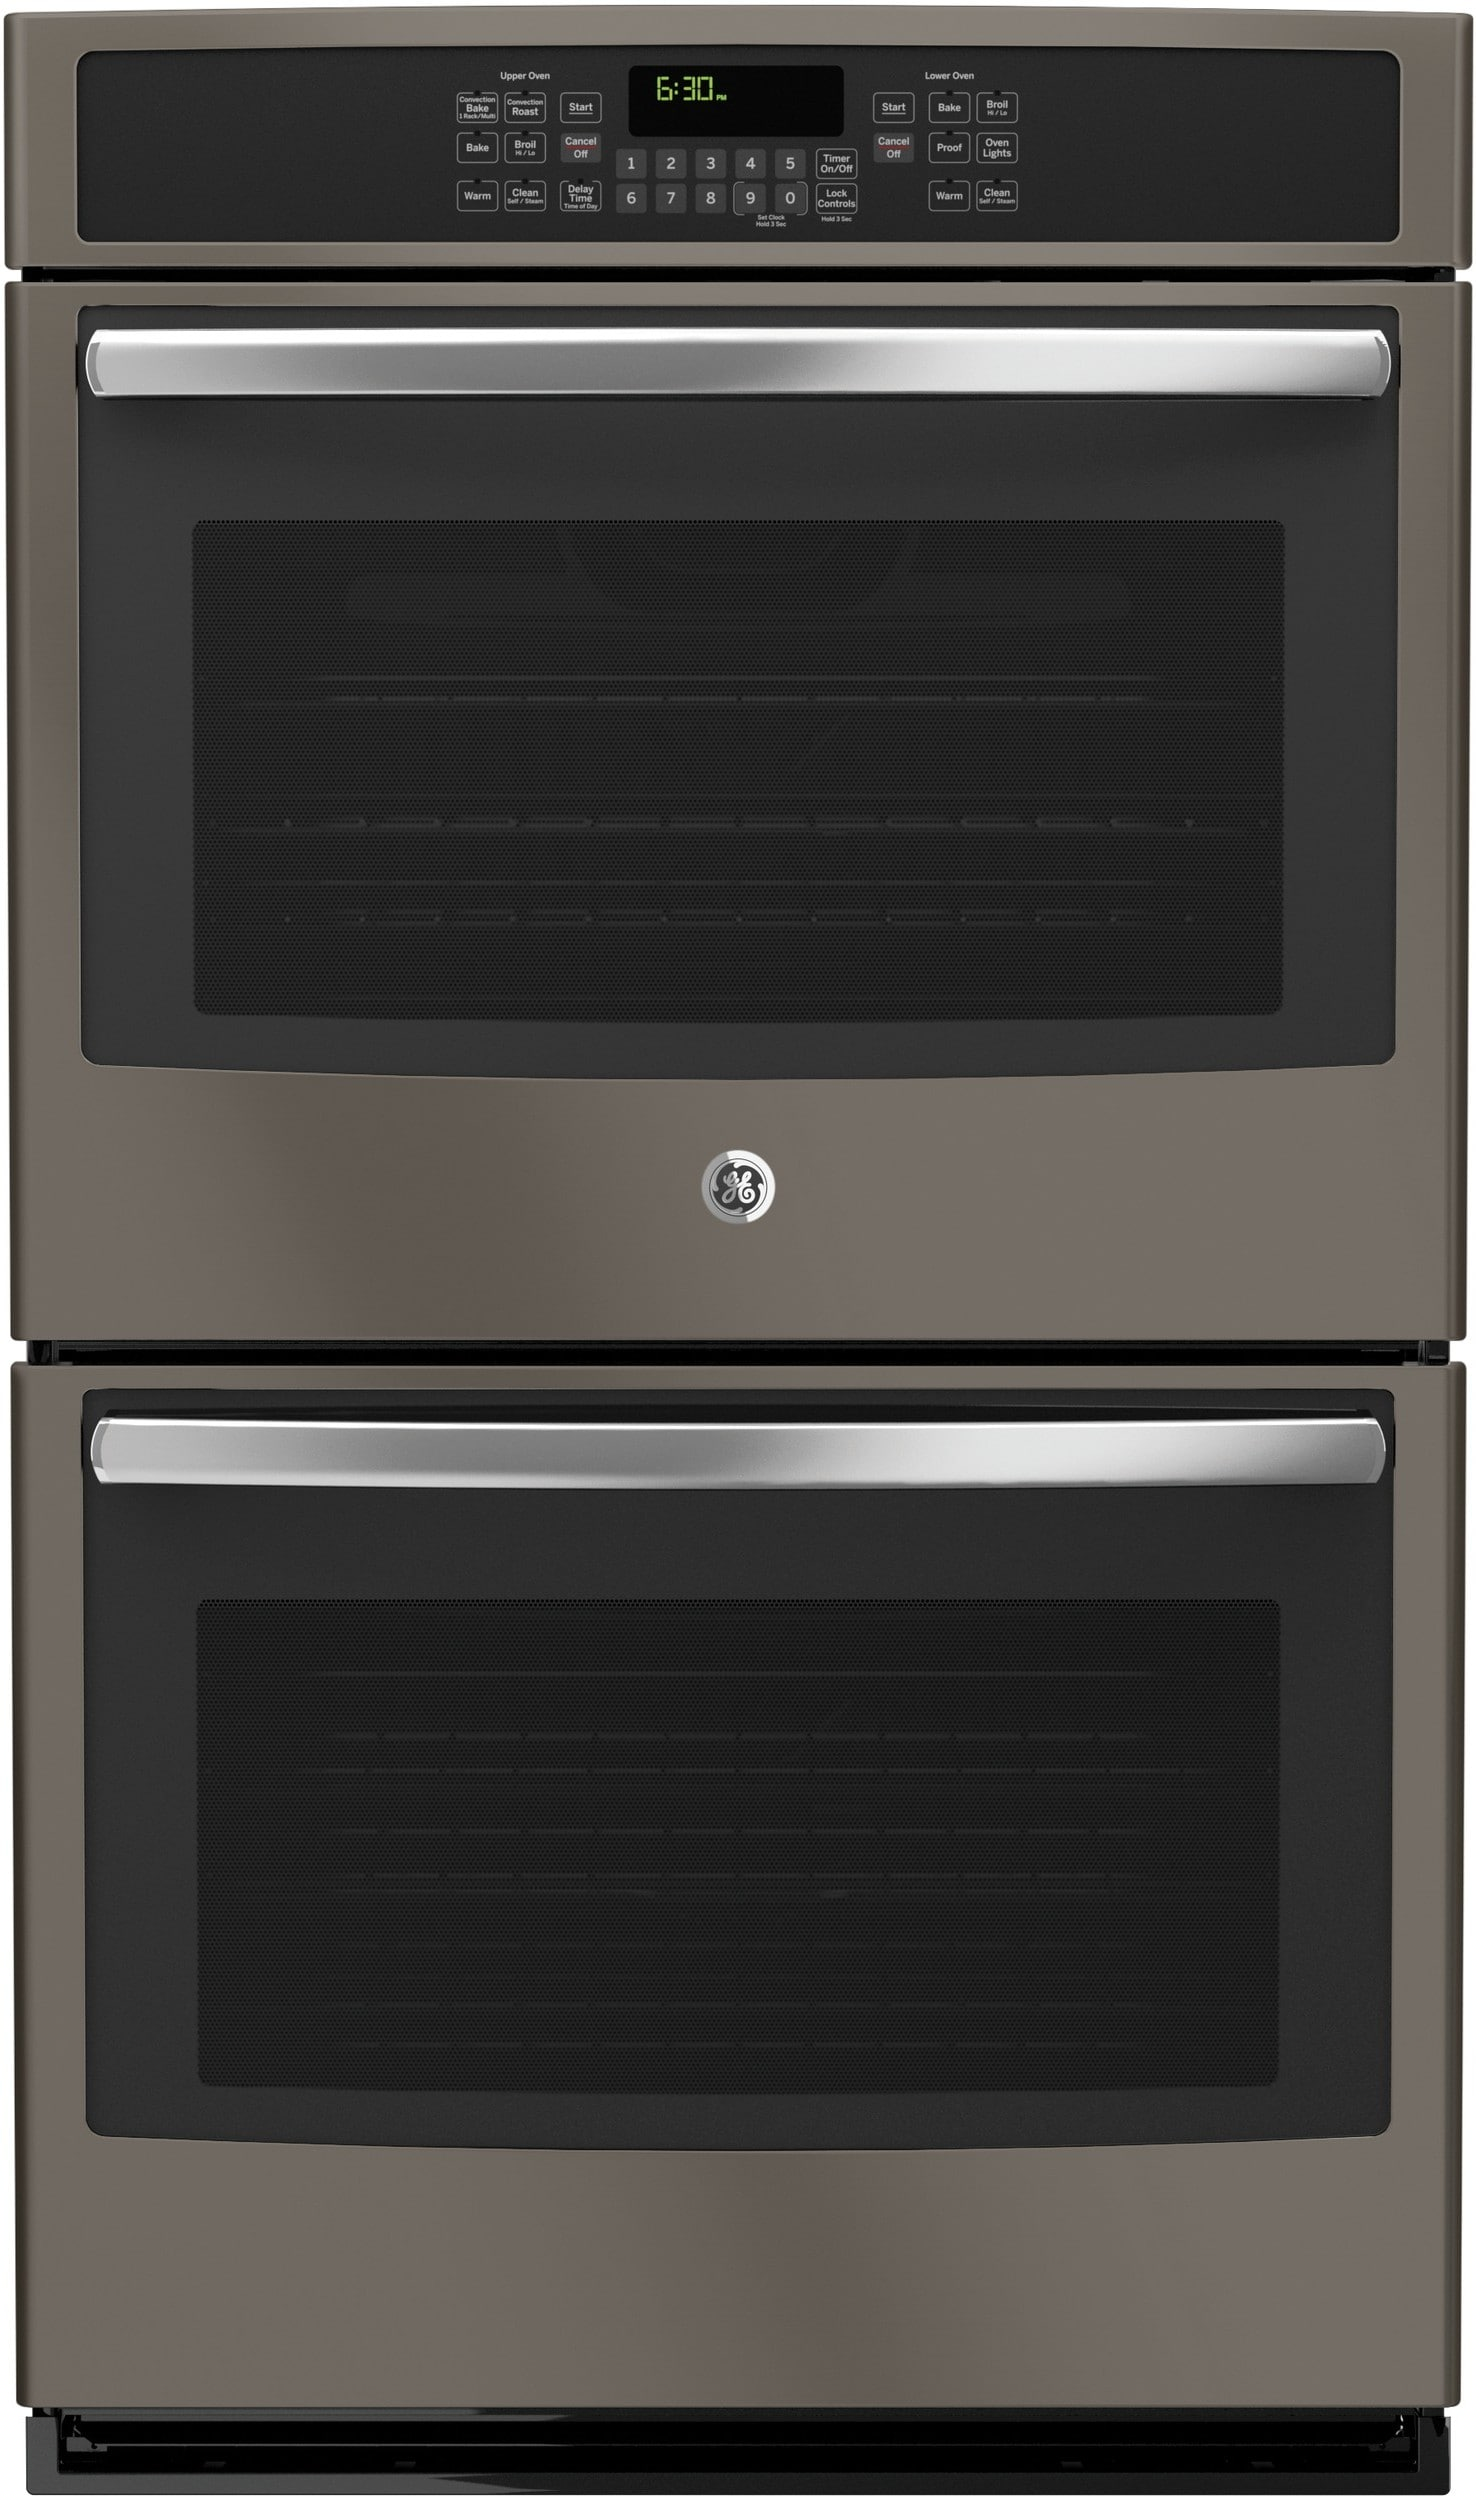 ge jt5500ejes 30 inch electric double wall oven with true convection self clean glass touch. Black Bedroom Furniture Sets. Home Design Ideas